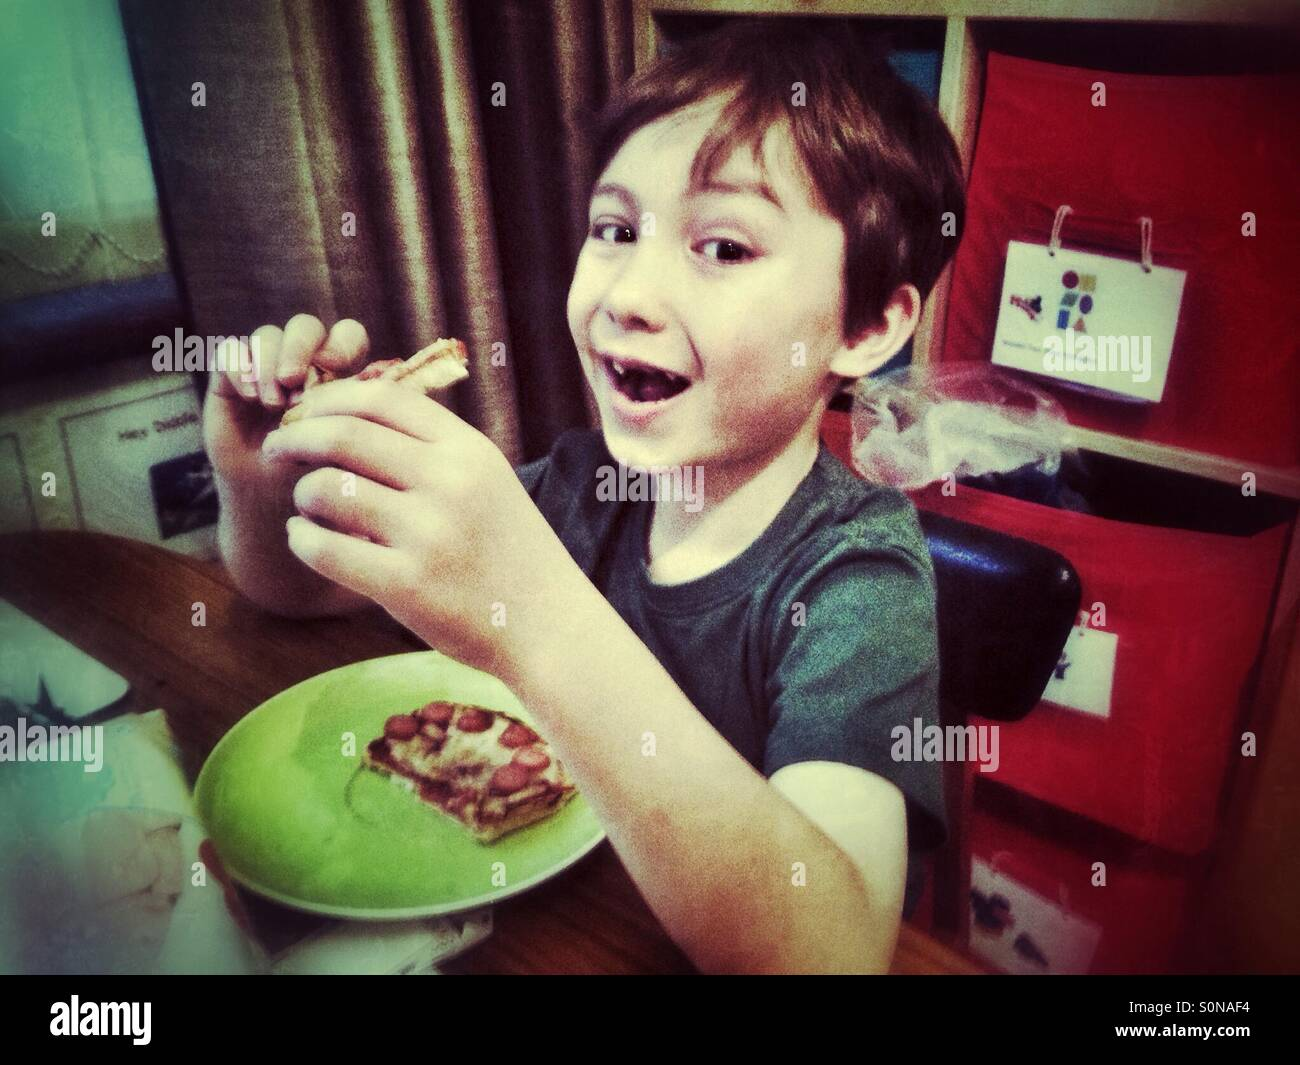 Young boy eating toast. - Stock Image